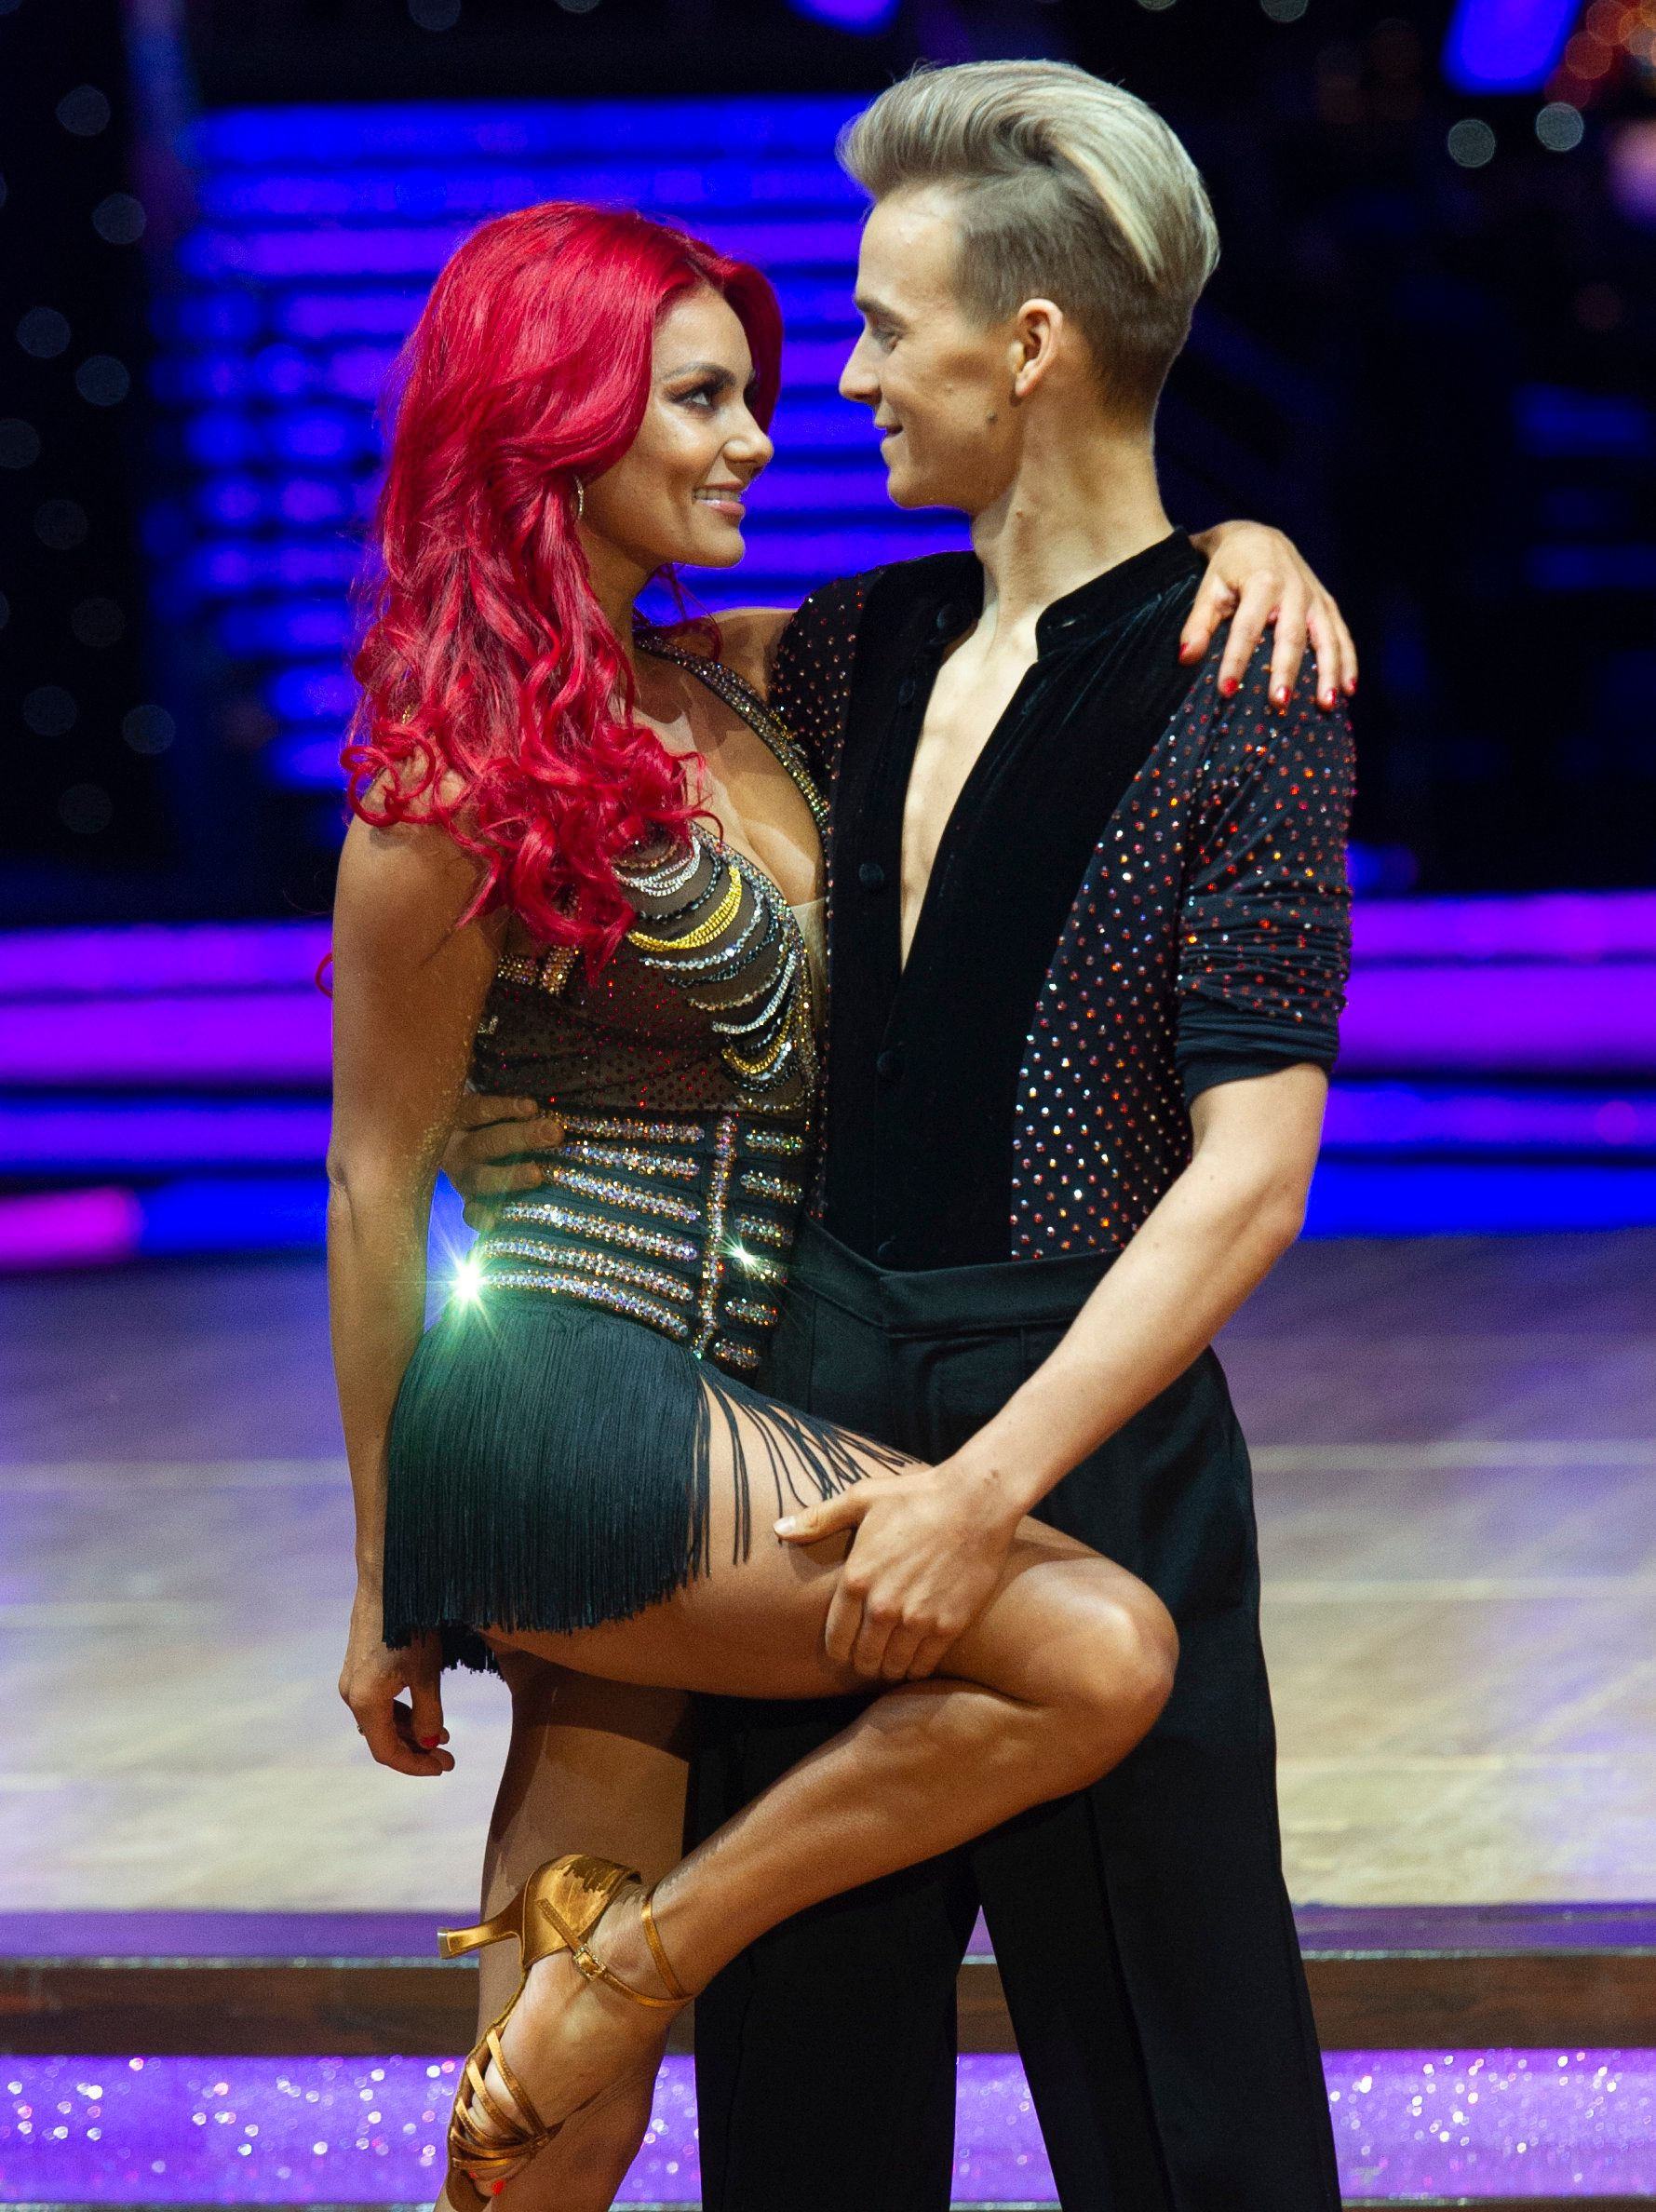 Strictly Come Dancing's Dianne Buswell Says She 'Never Ever' Thought Joe Sugg Romance Would